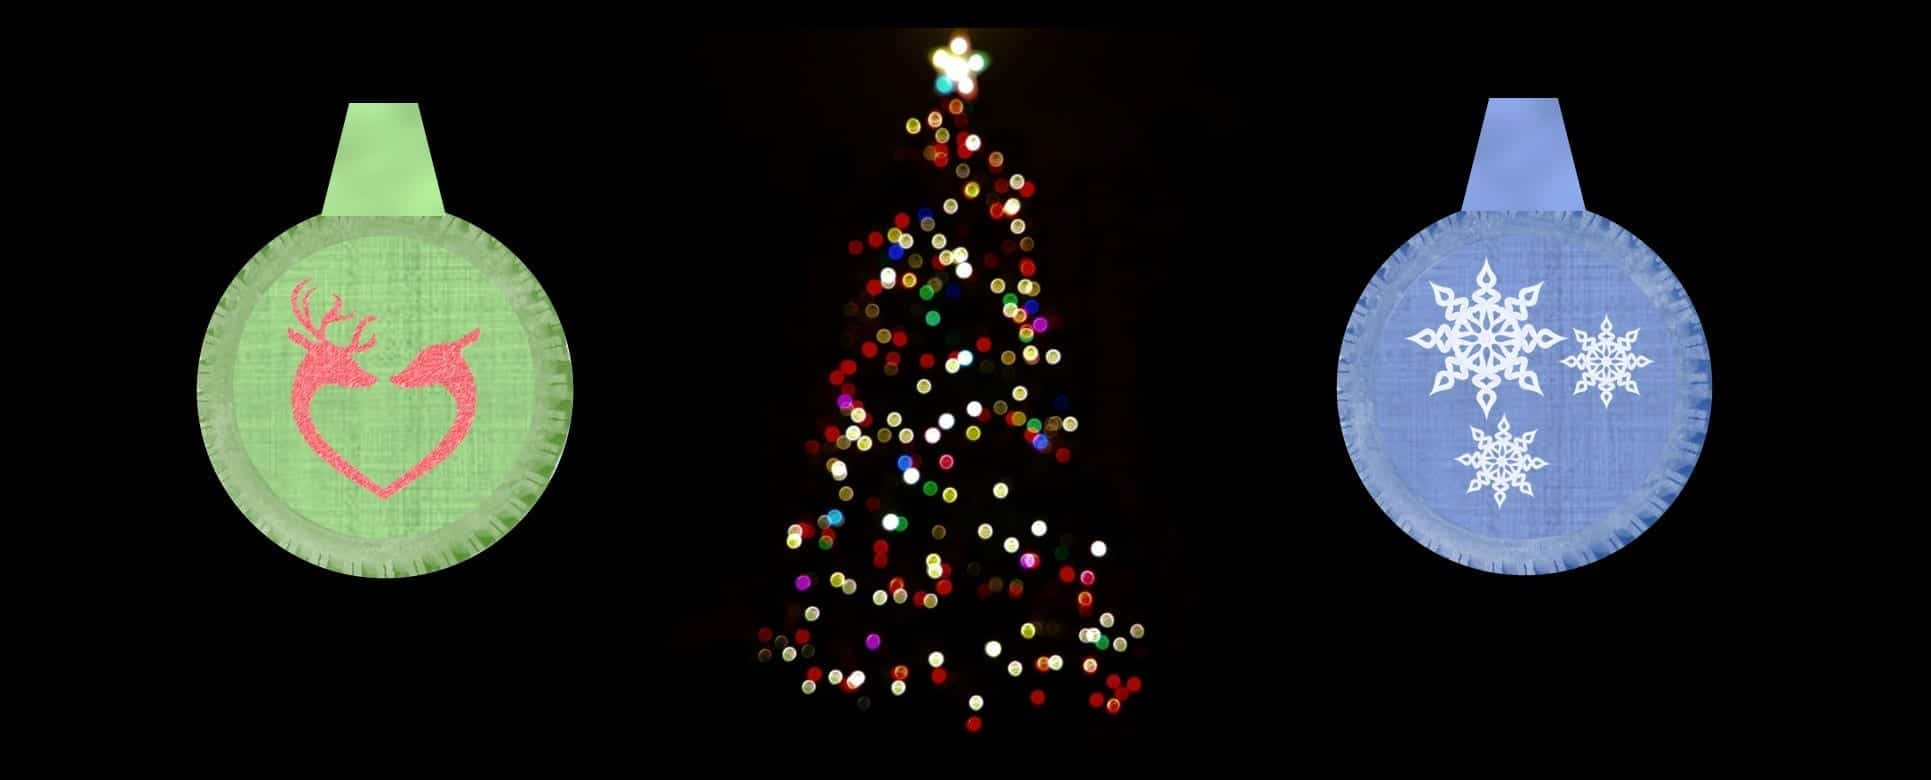 Composite image of tire ornaments and Christmas tree by editor. See end of post for photo credits.